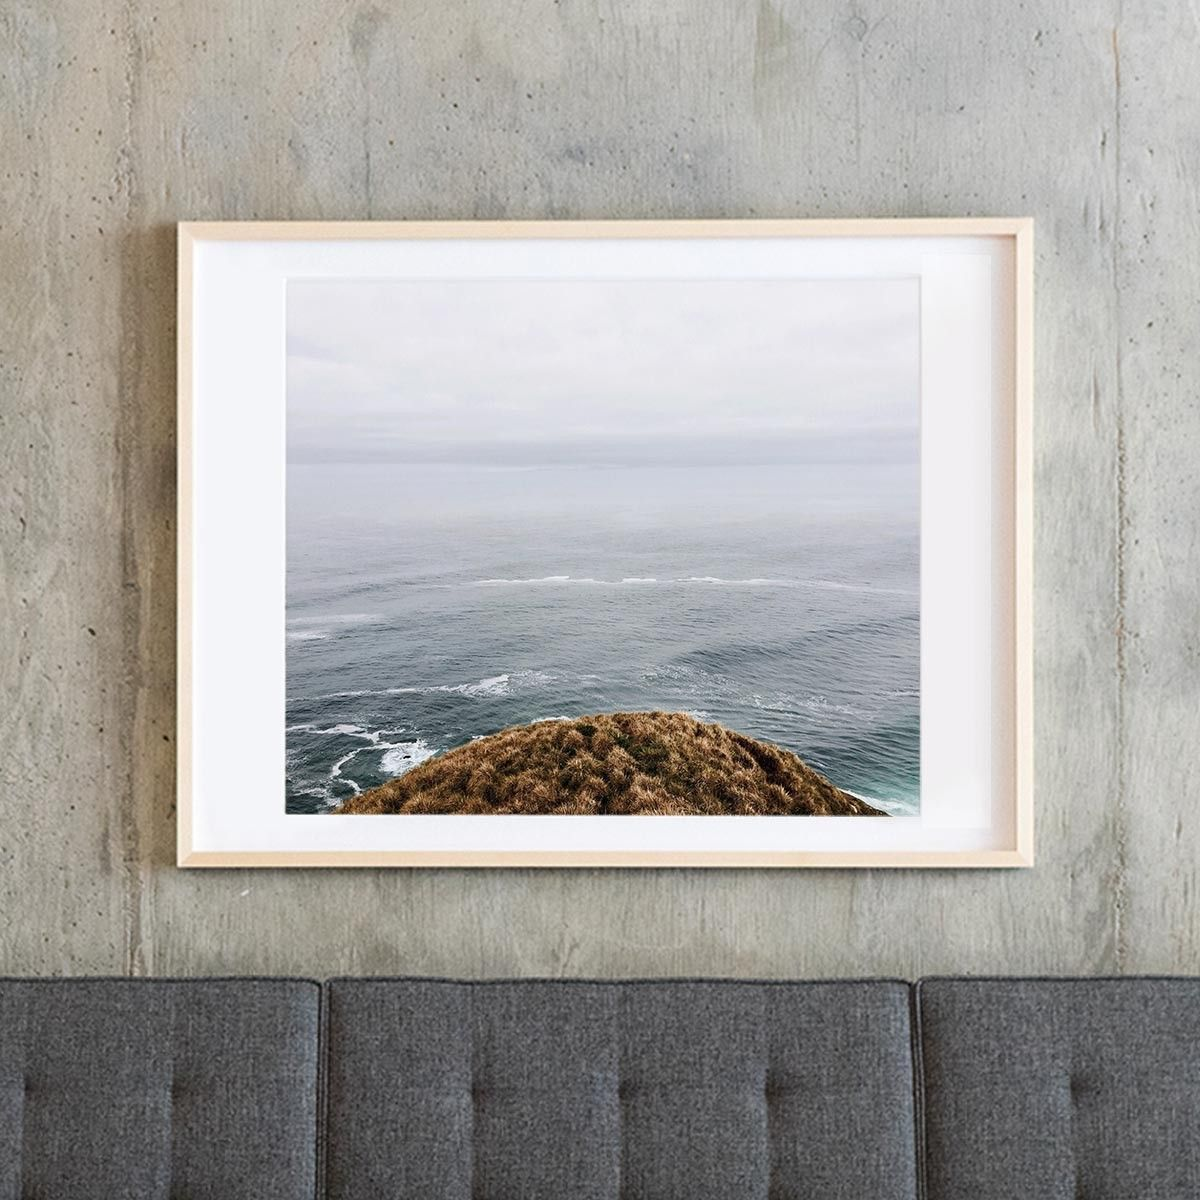 Deep set frames walls bedrooms and lofts real hardwood frame wide and 1 deep distinguished for its back mounted style which sets back your photo mat and plexiglass by into frame or jeuxipadfo Images